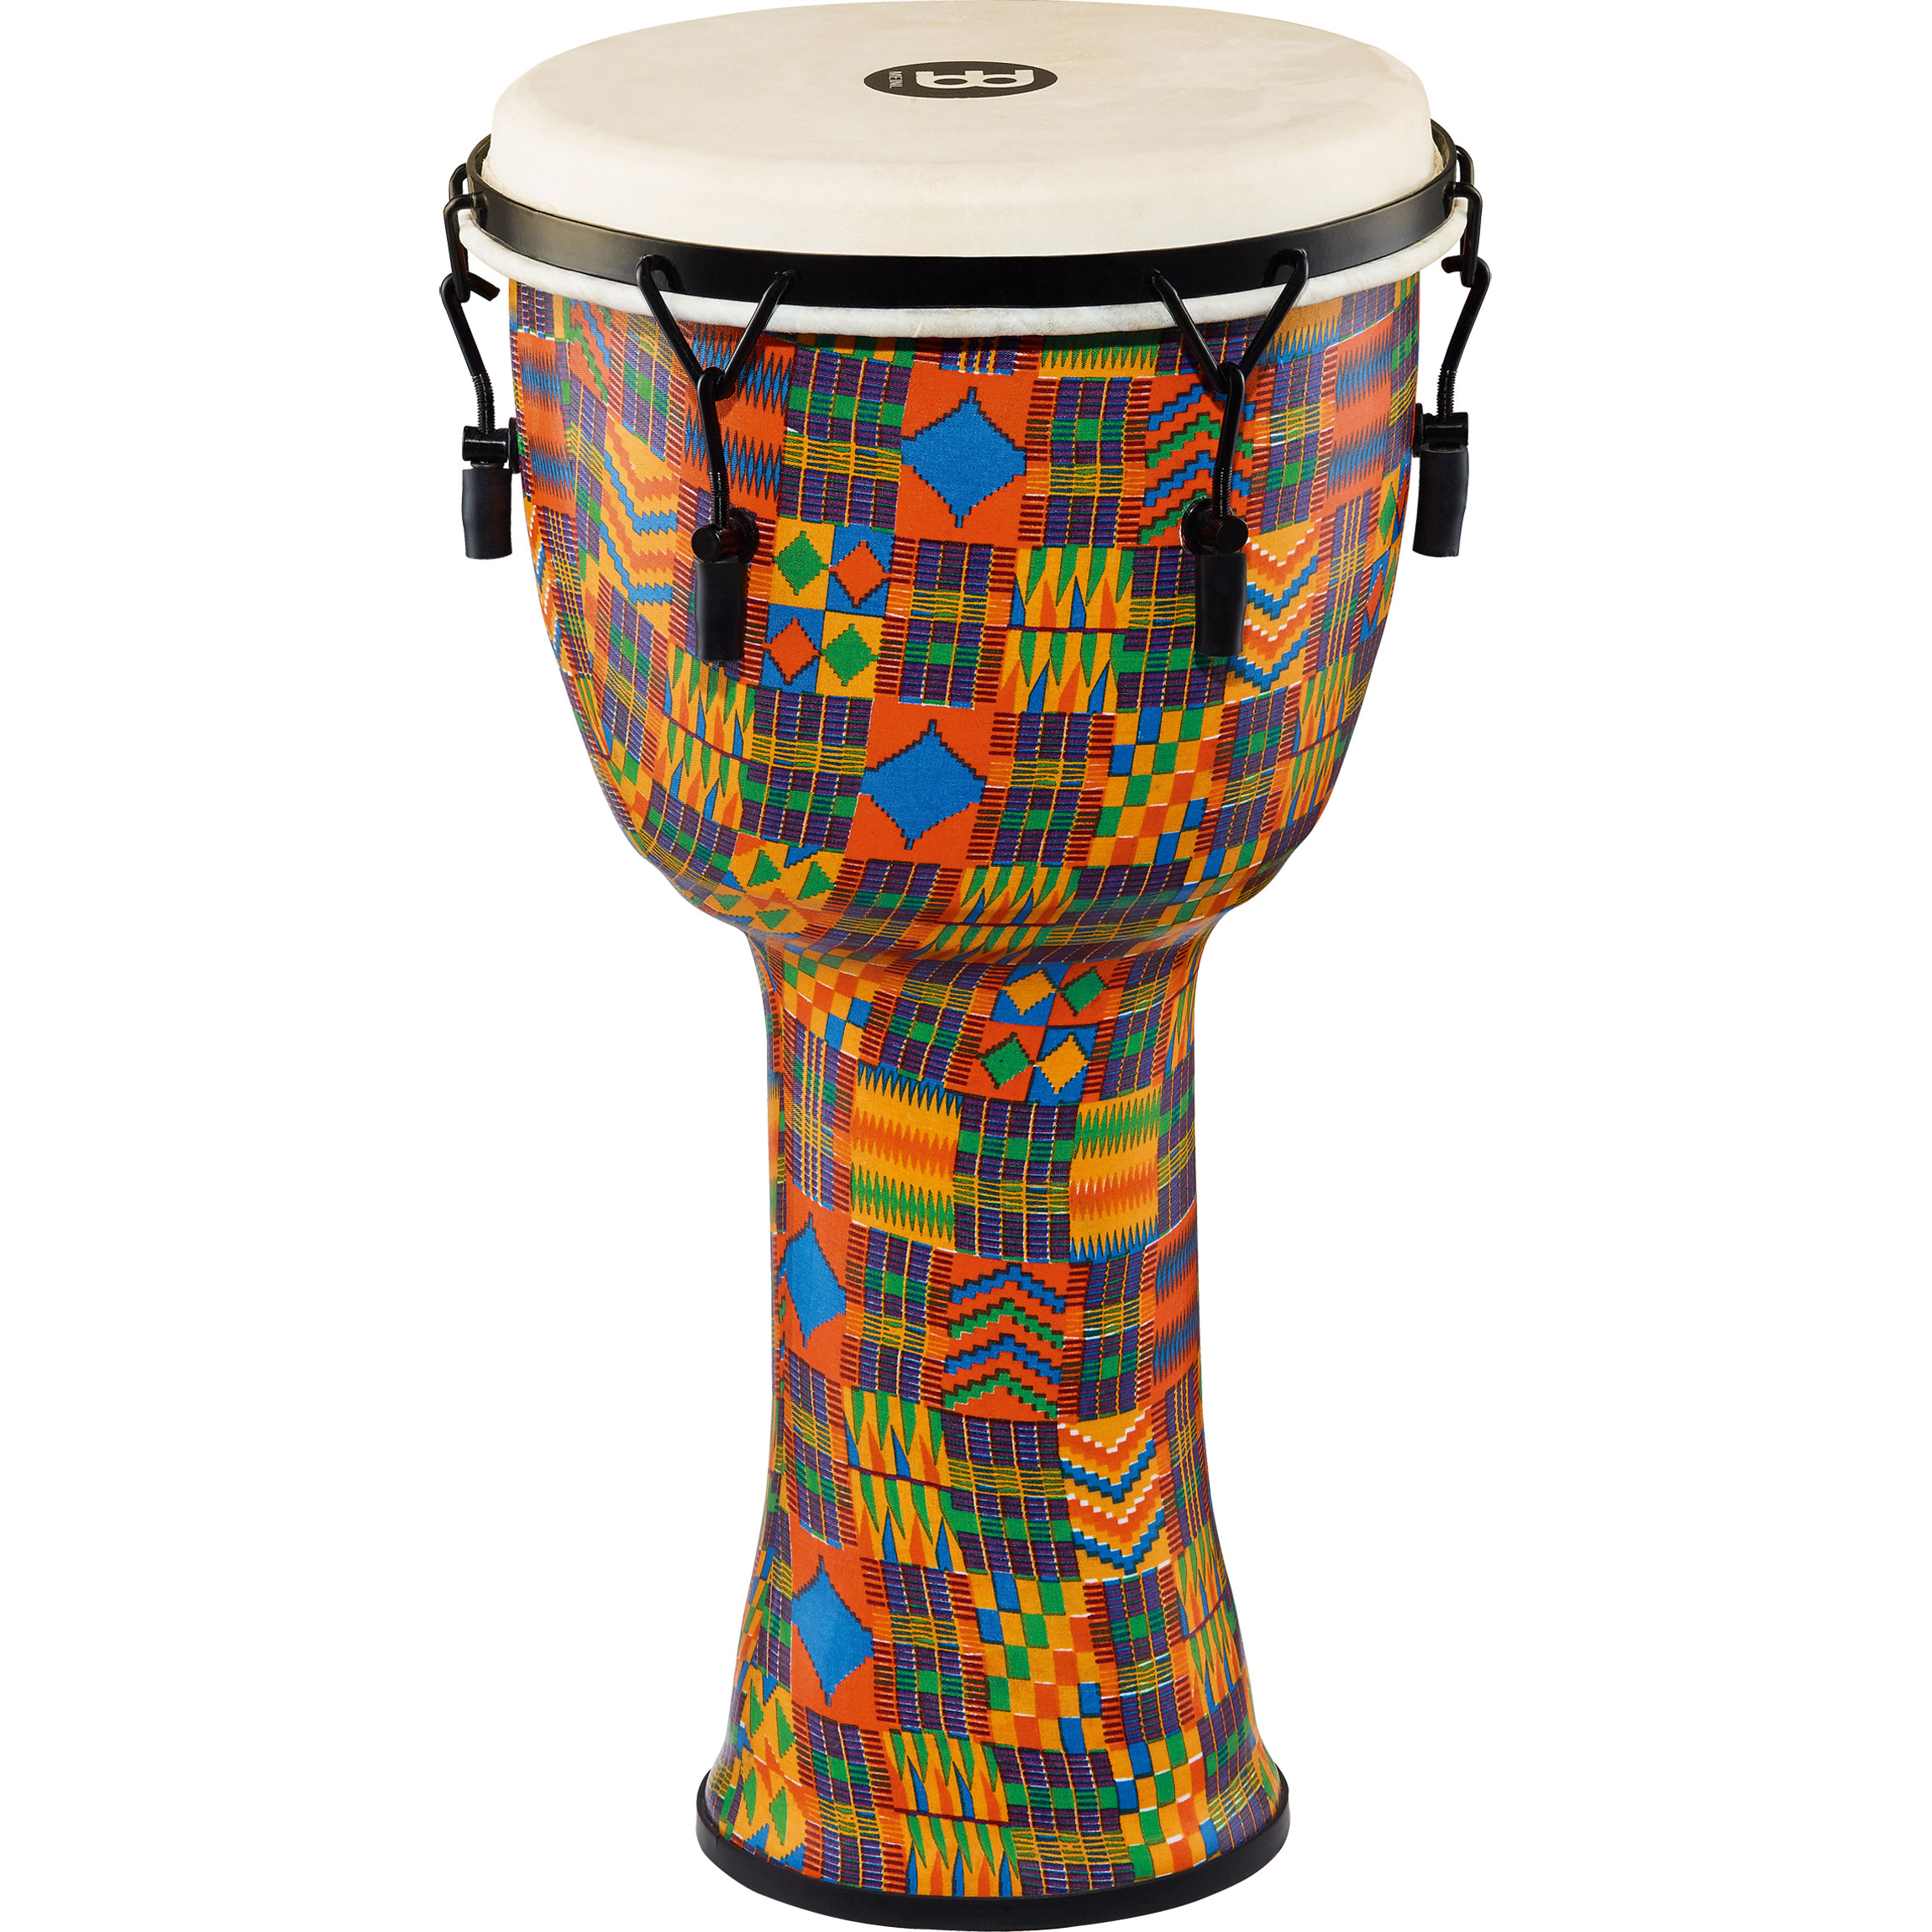 "Meinl 12"" Mechanically-Tuned Travel Djembe in Kenyan Quilt with Natural Head"